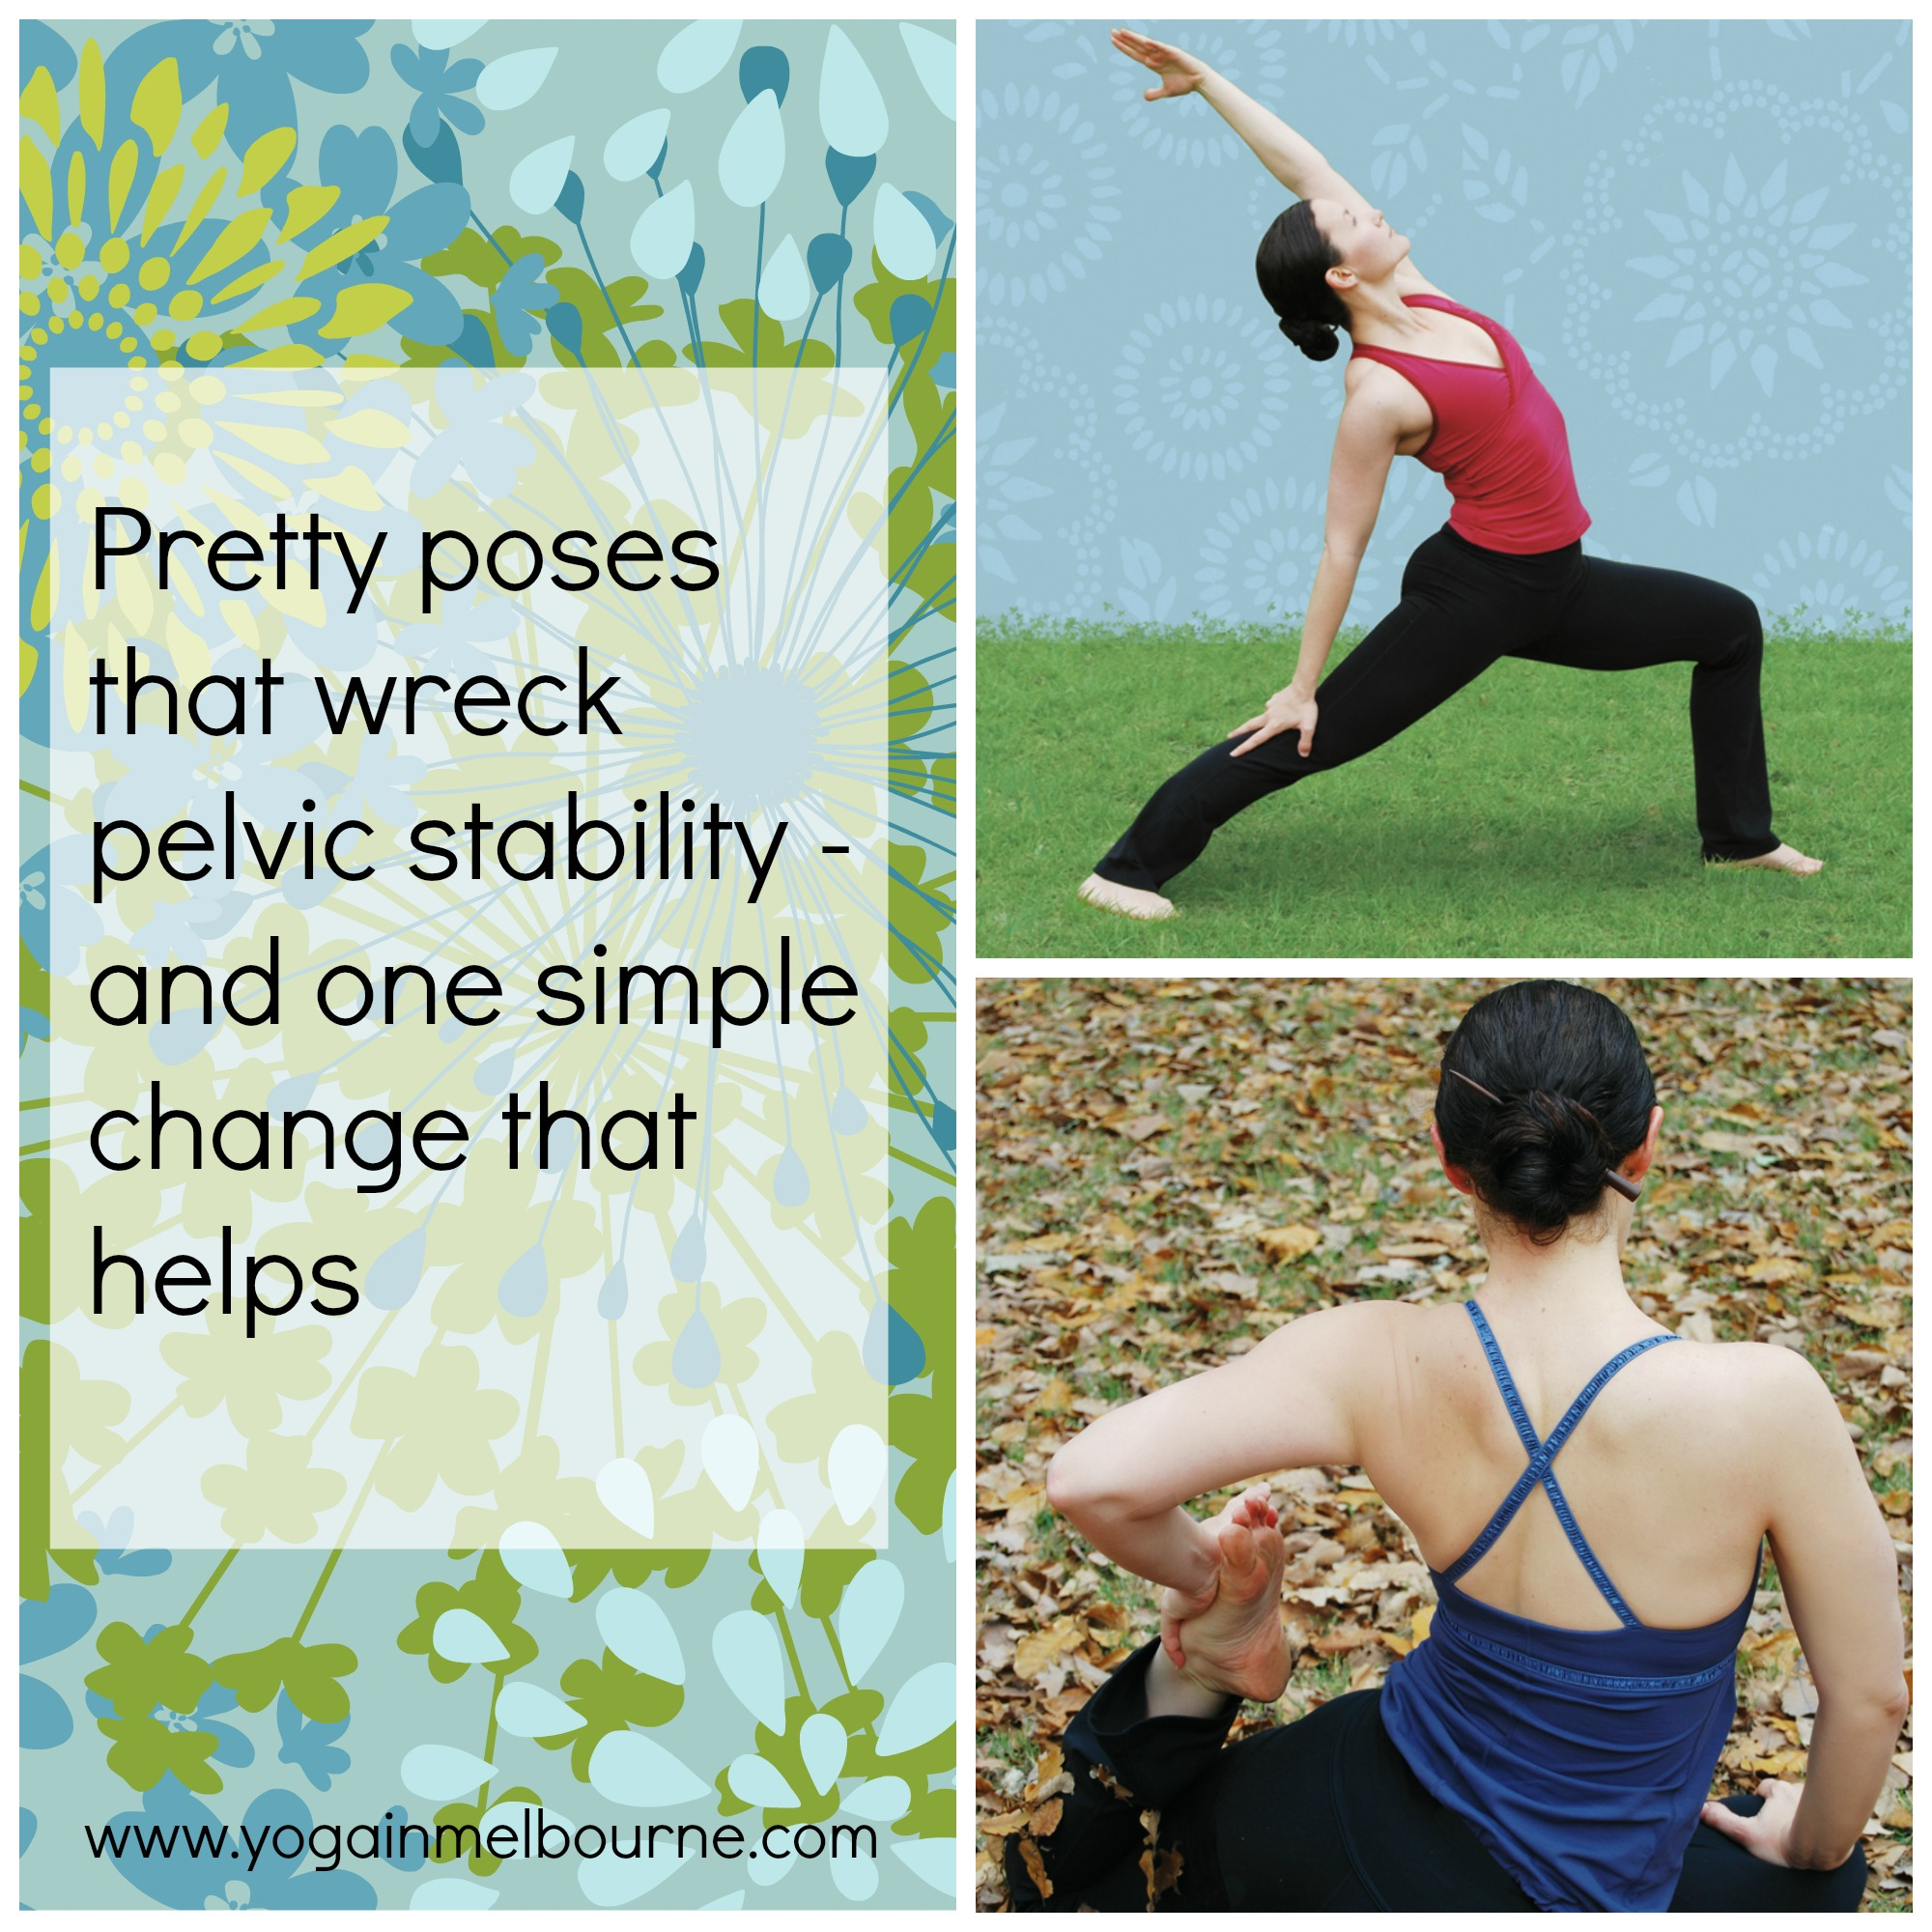 One simple way to stabilise your pelvis in yoga